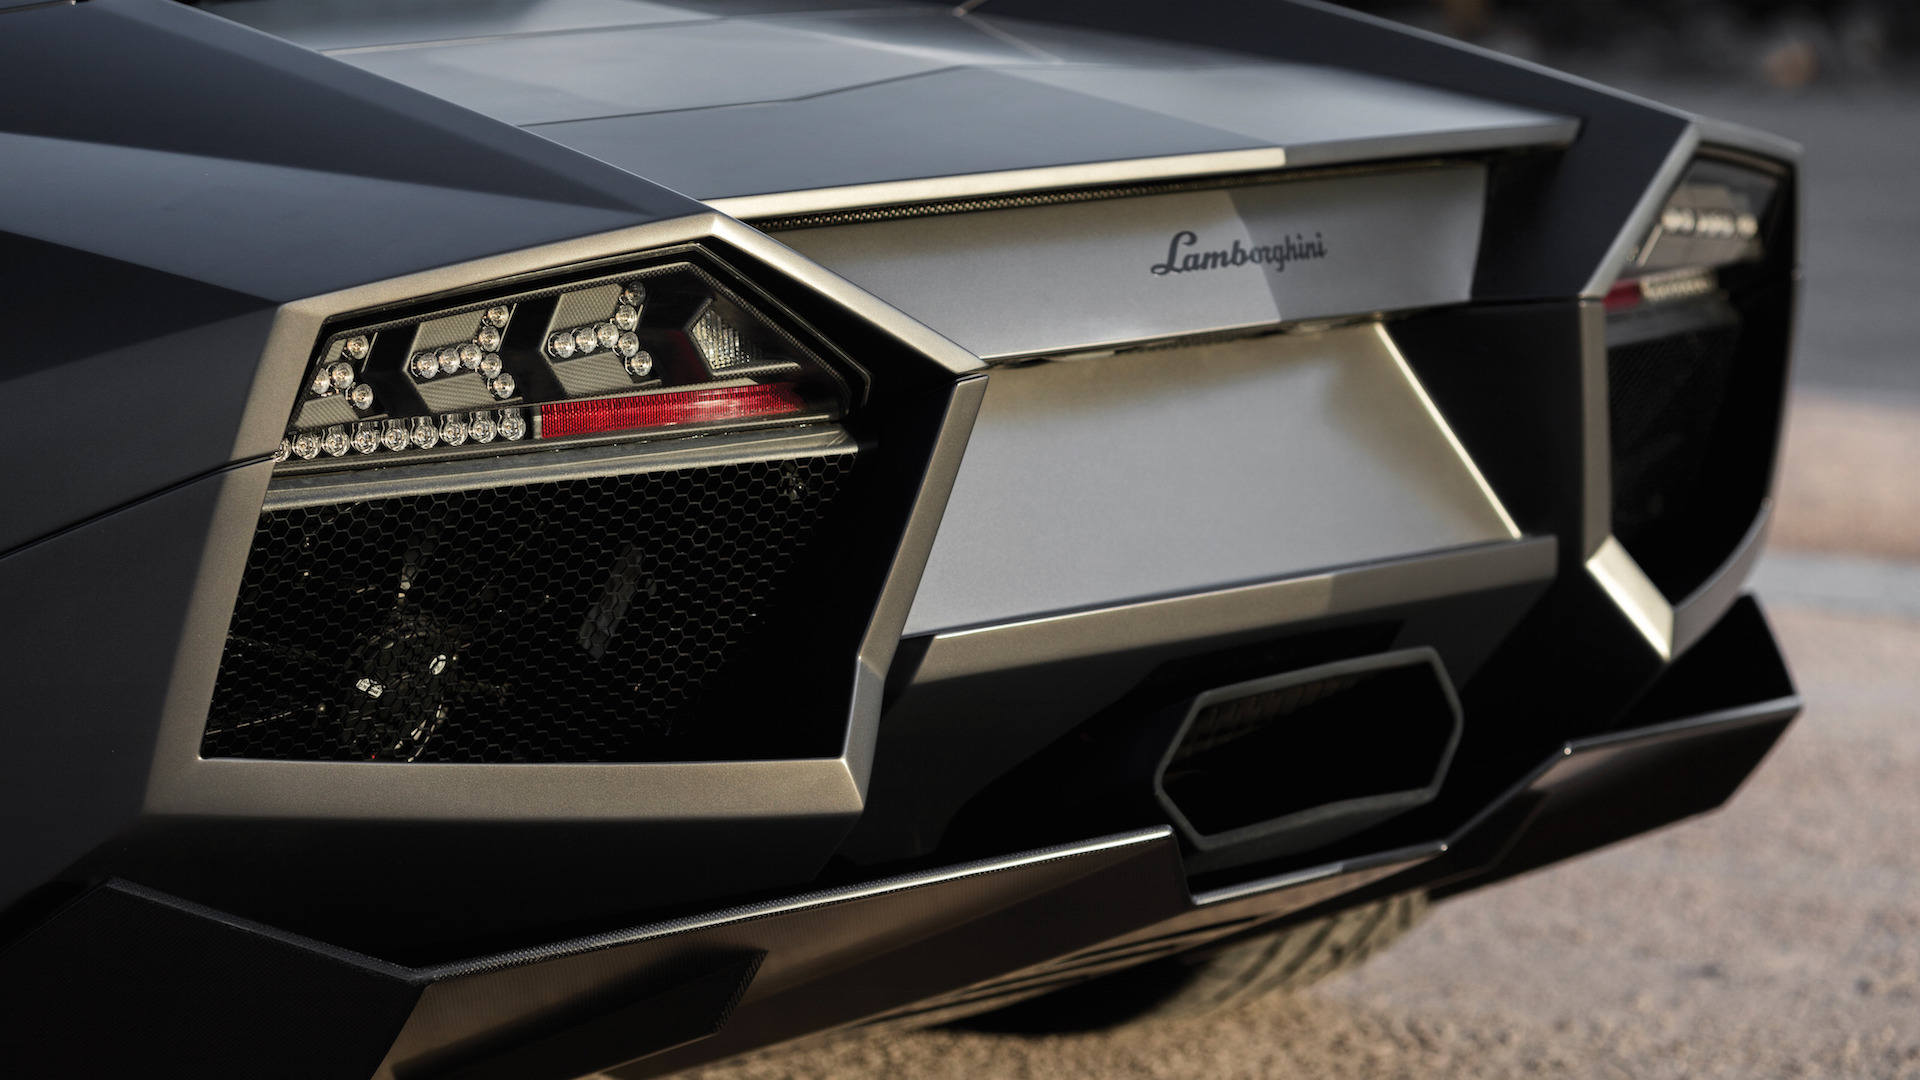 2007_Lamborghini_Reventon_Auction_12